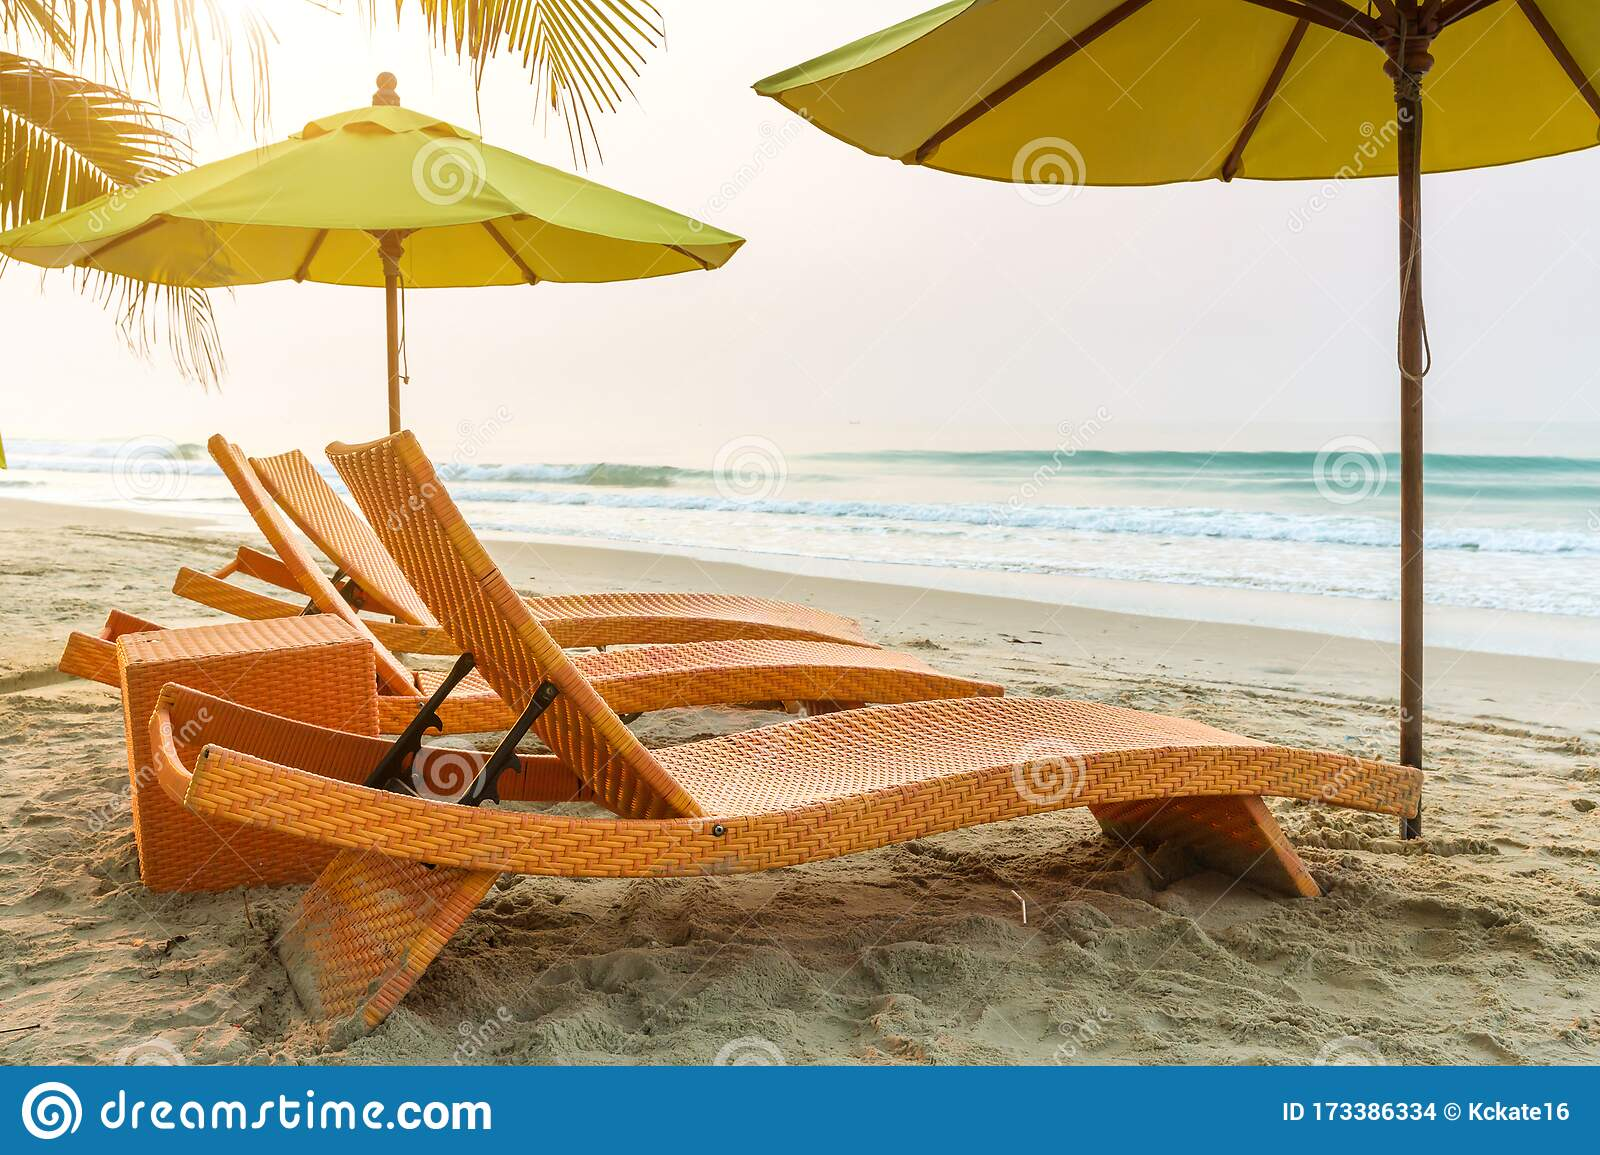 Beach Chair Under The Big Umbrella And Was On The Beach Beautiful Beach Chairs On The Sandy Beach Near The Sea Stock Photo Image Of Cruise Beauty 173386334